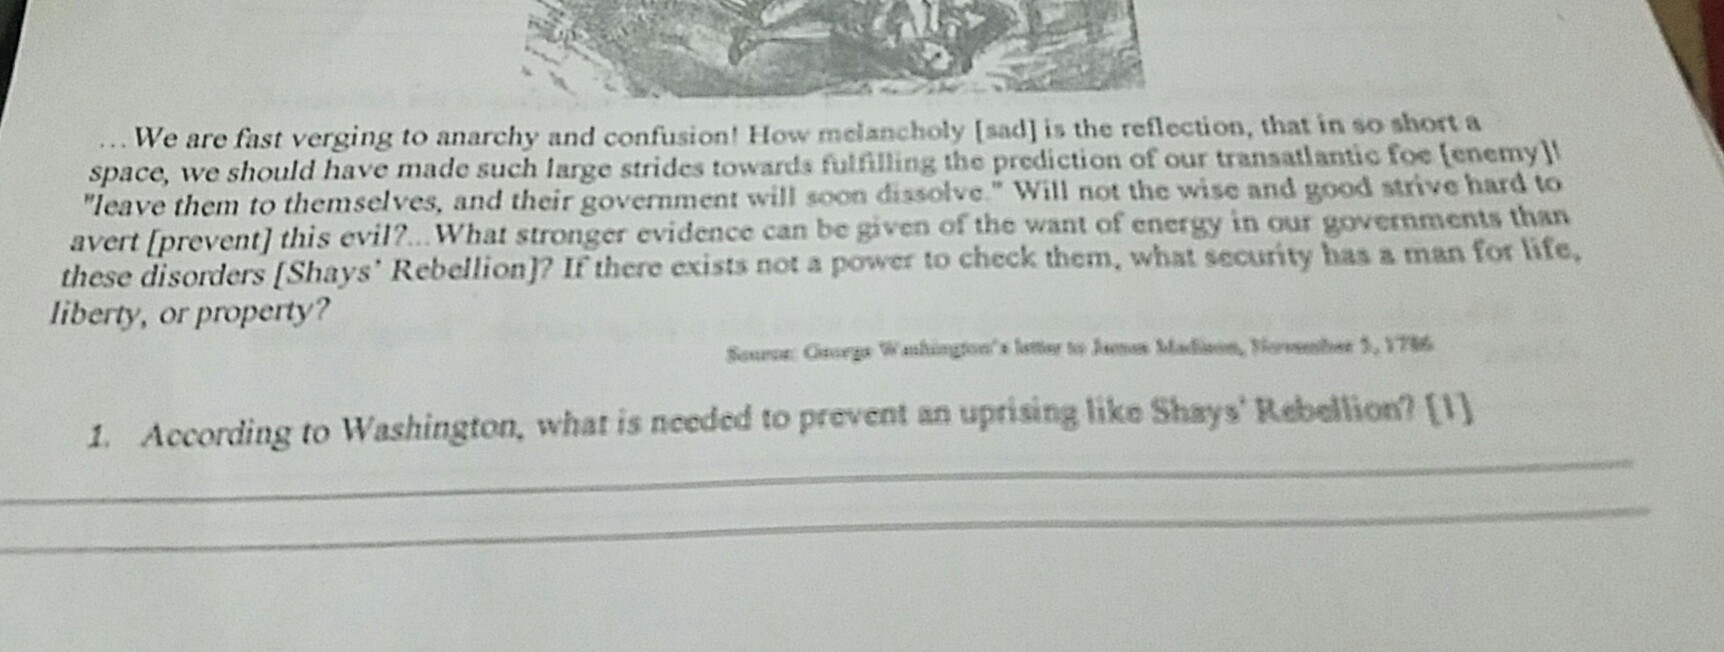 According To Washington What Is Needed To Prevent An Uprising Like